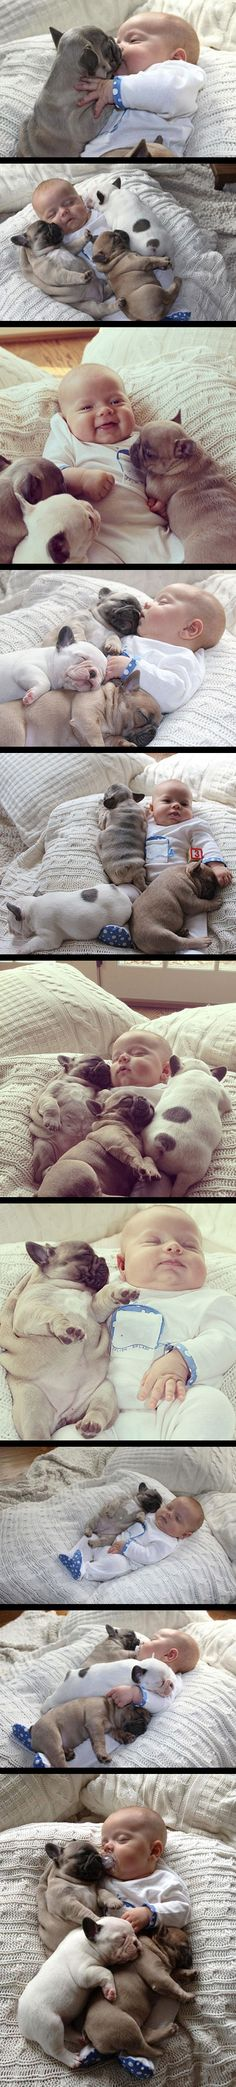 Baby covered in French bulldog puppies becomes an internet hit.